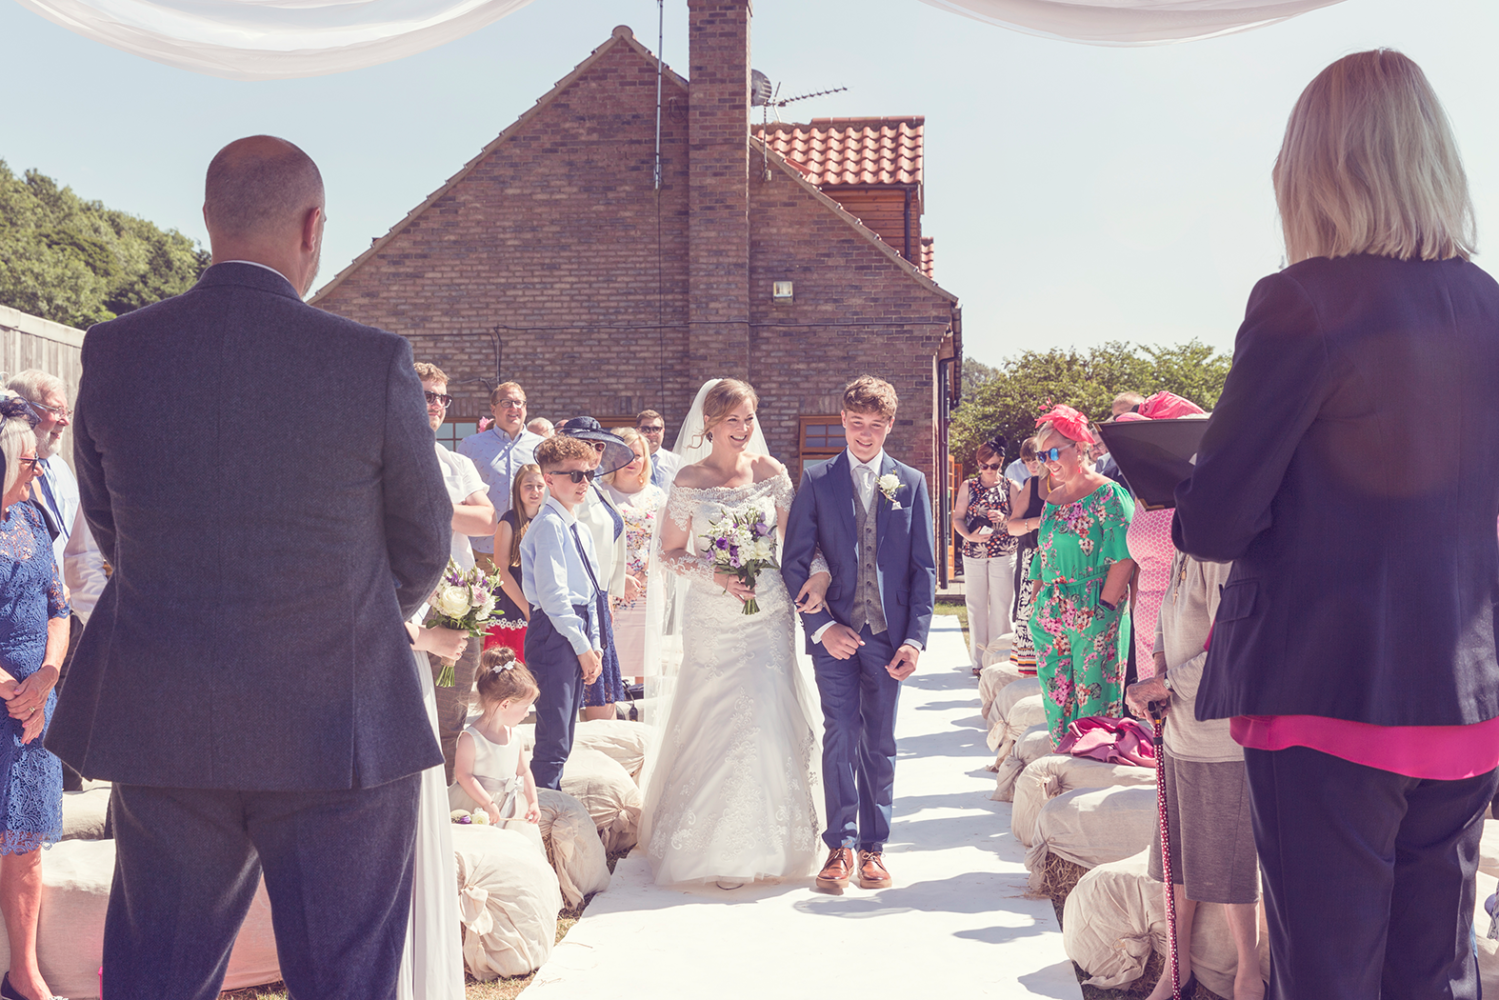 Bride walking down the aisle with her son at Stepney Hill Farm Wedding Venue